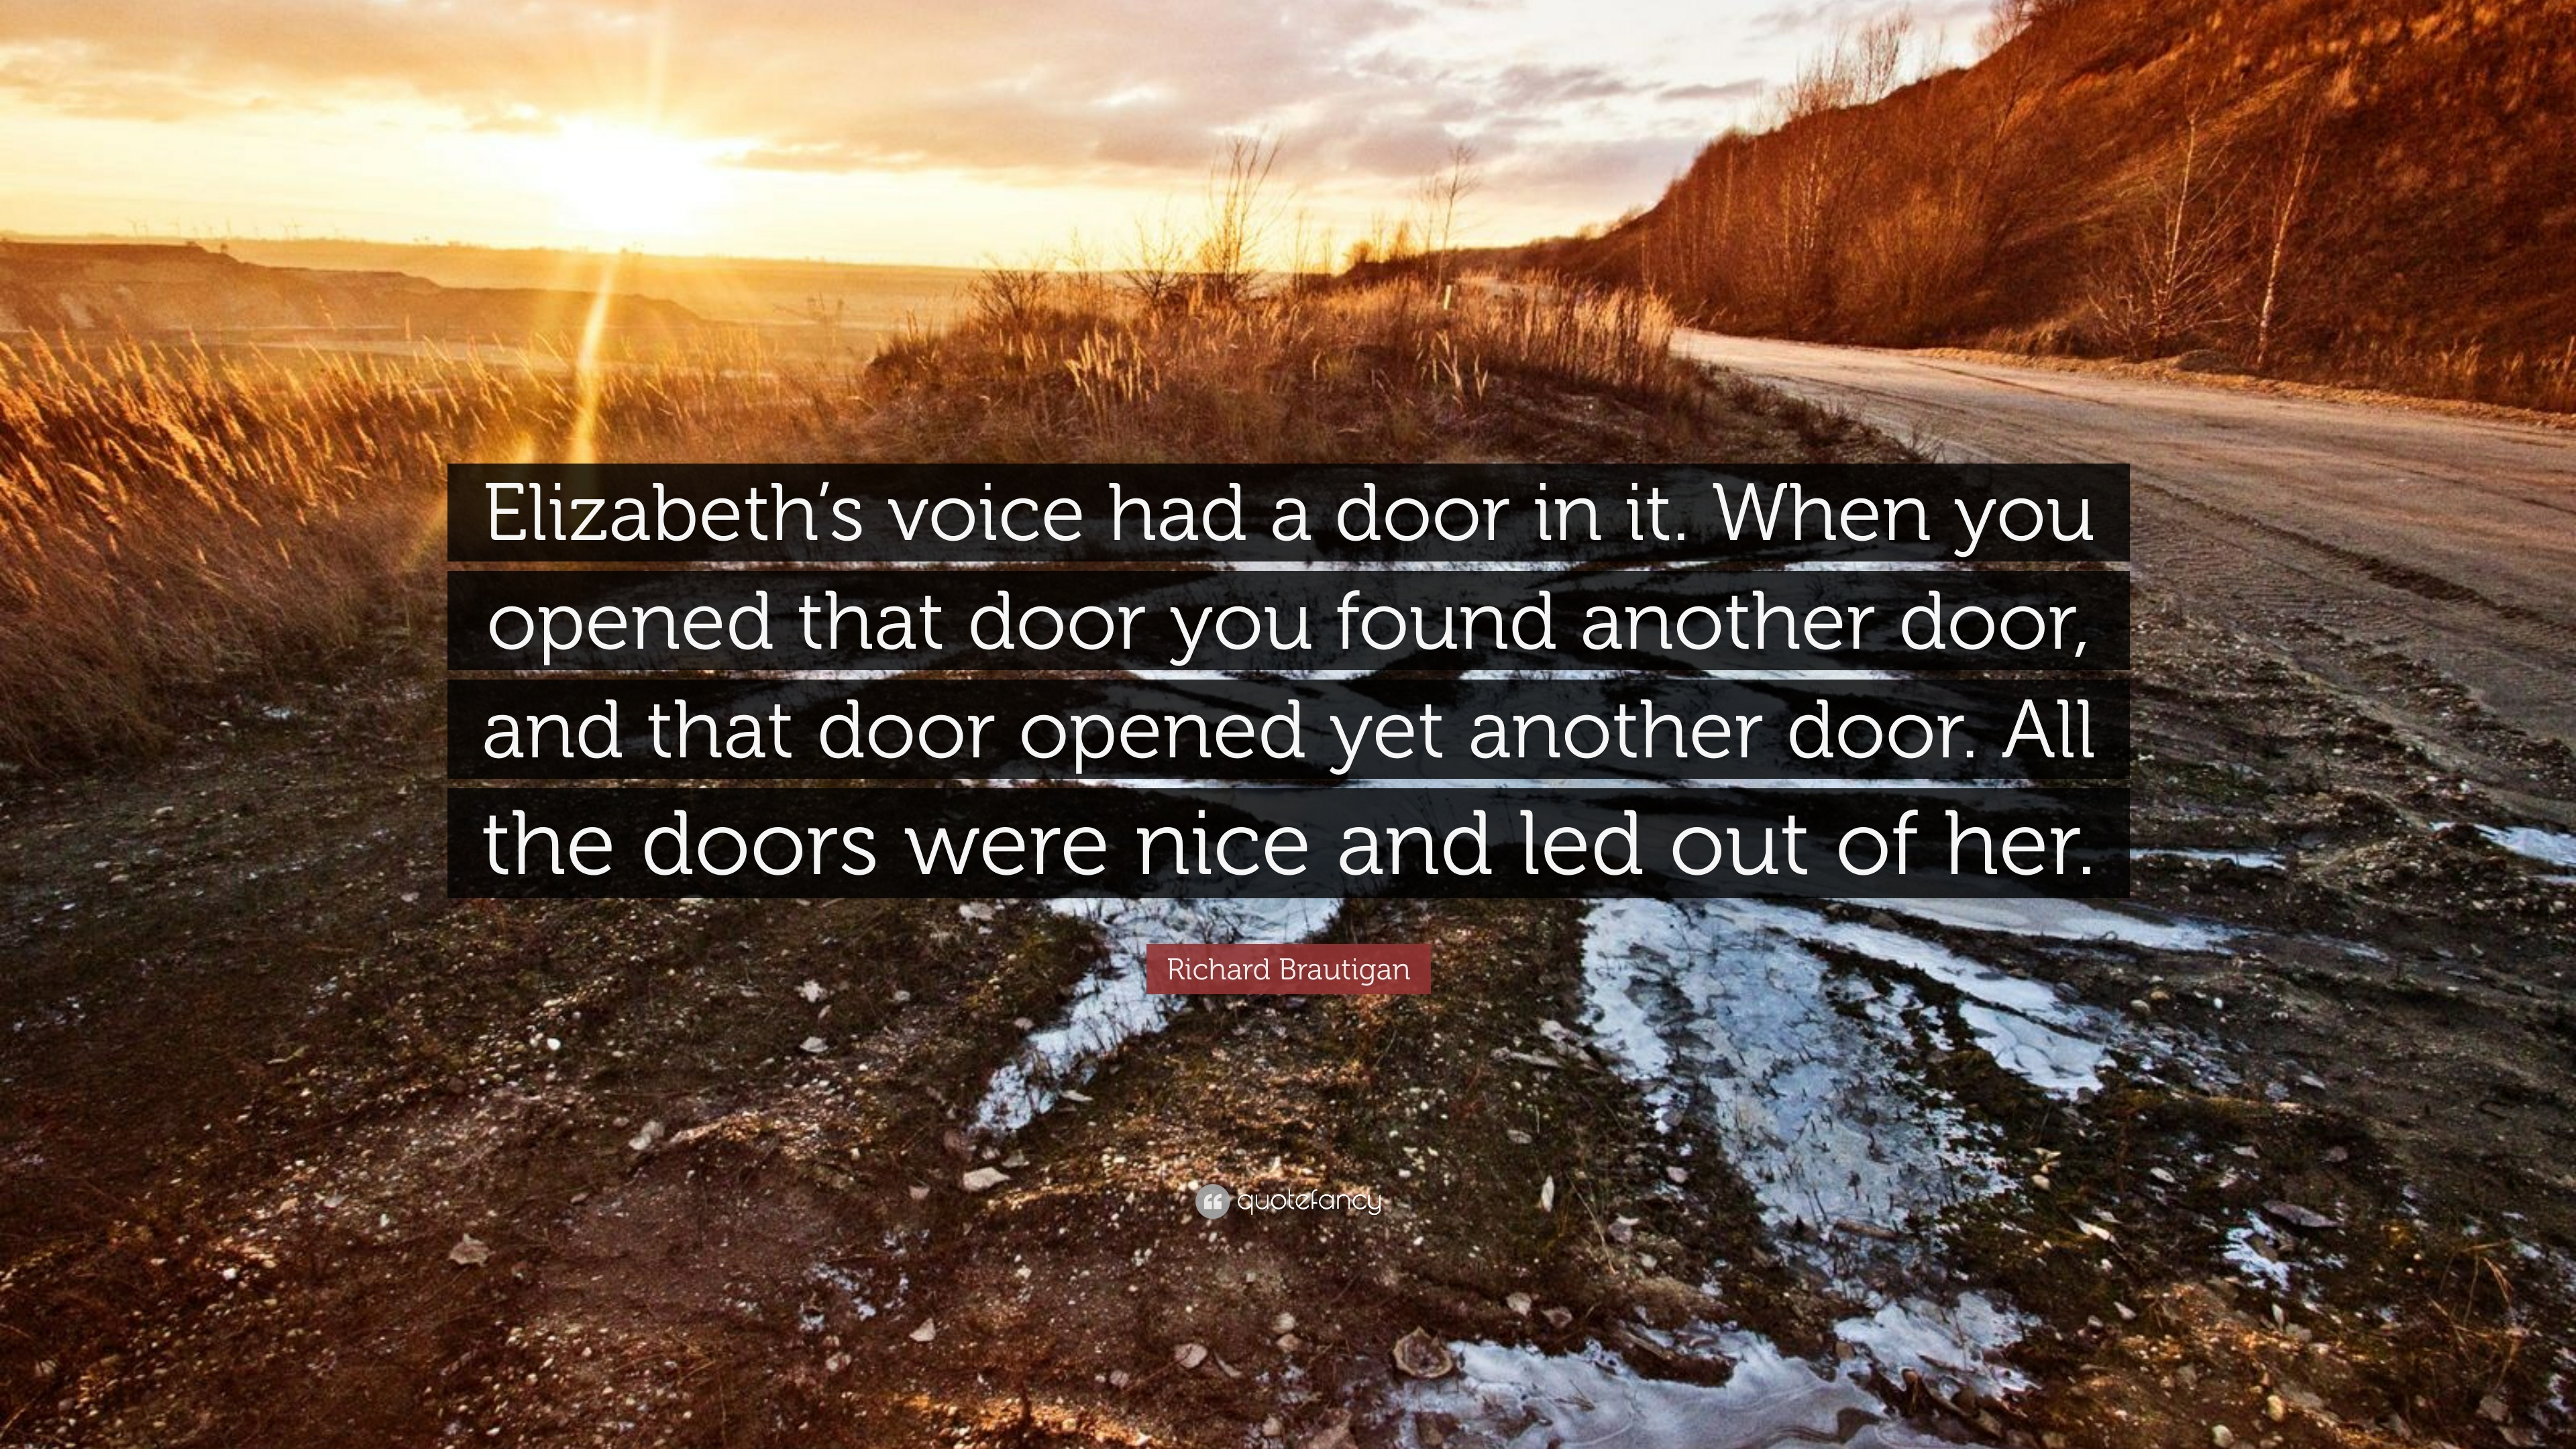 Perfect Richard Brautigan Quote: U201cElizabethu0027s Voice Had A Door In It. When You  Opened